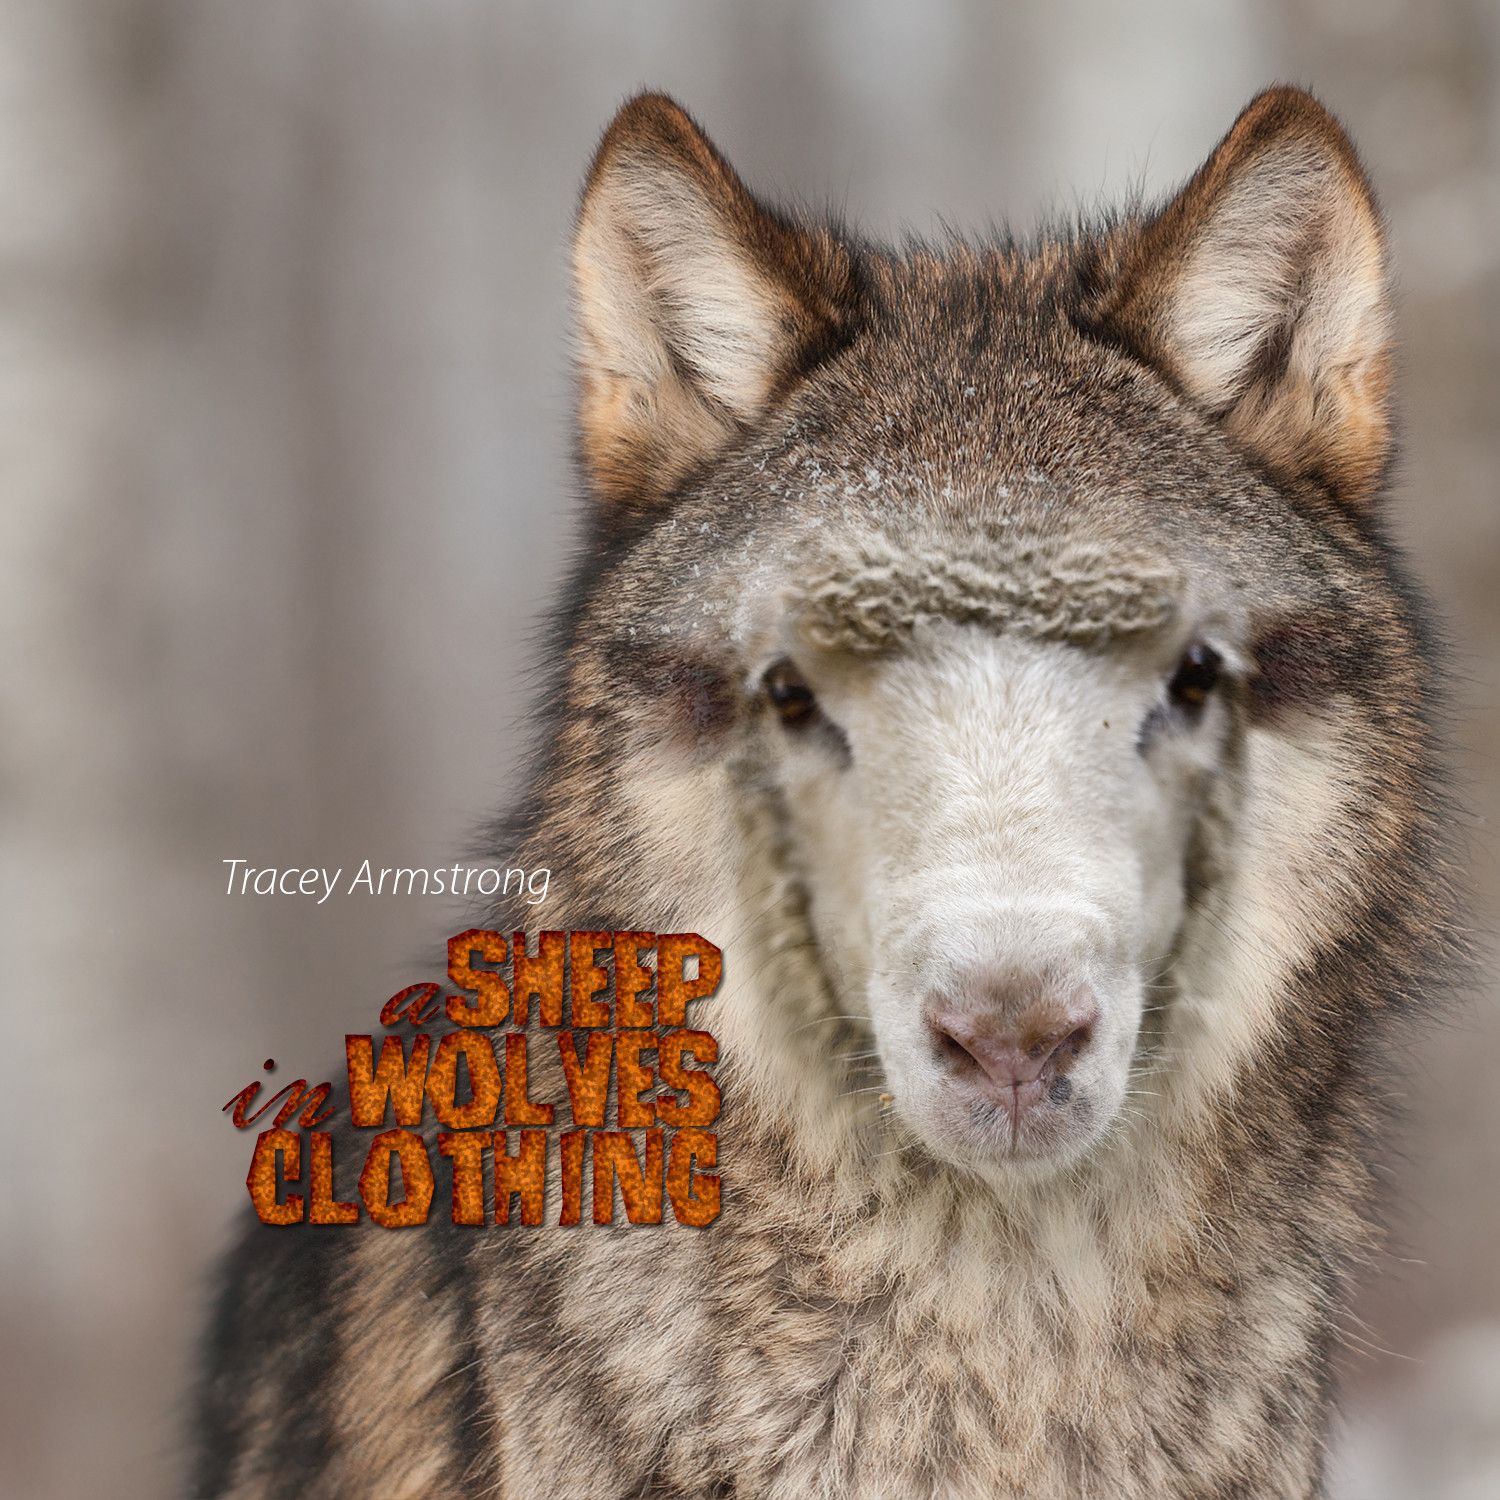 A Sheep in Wolves Clothing